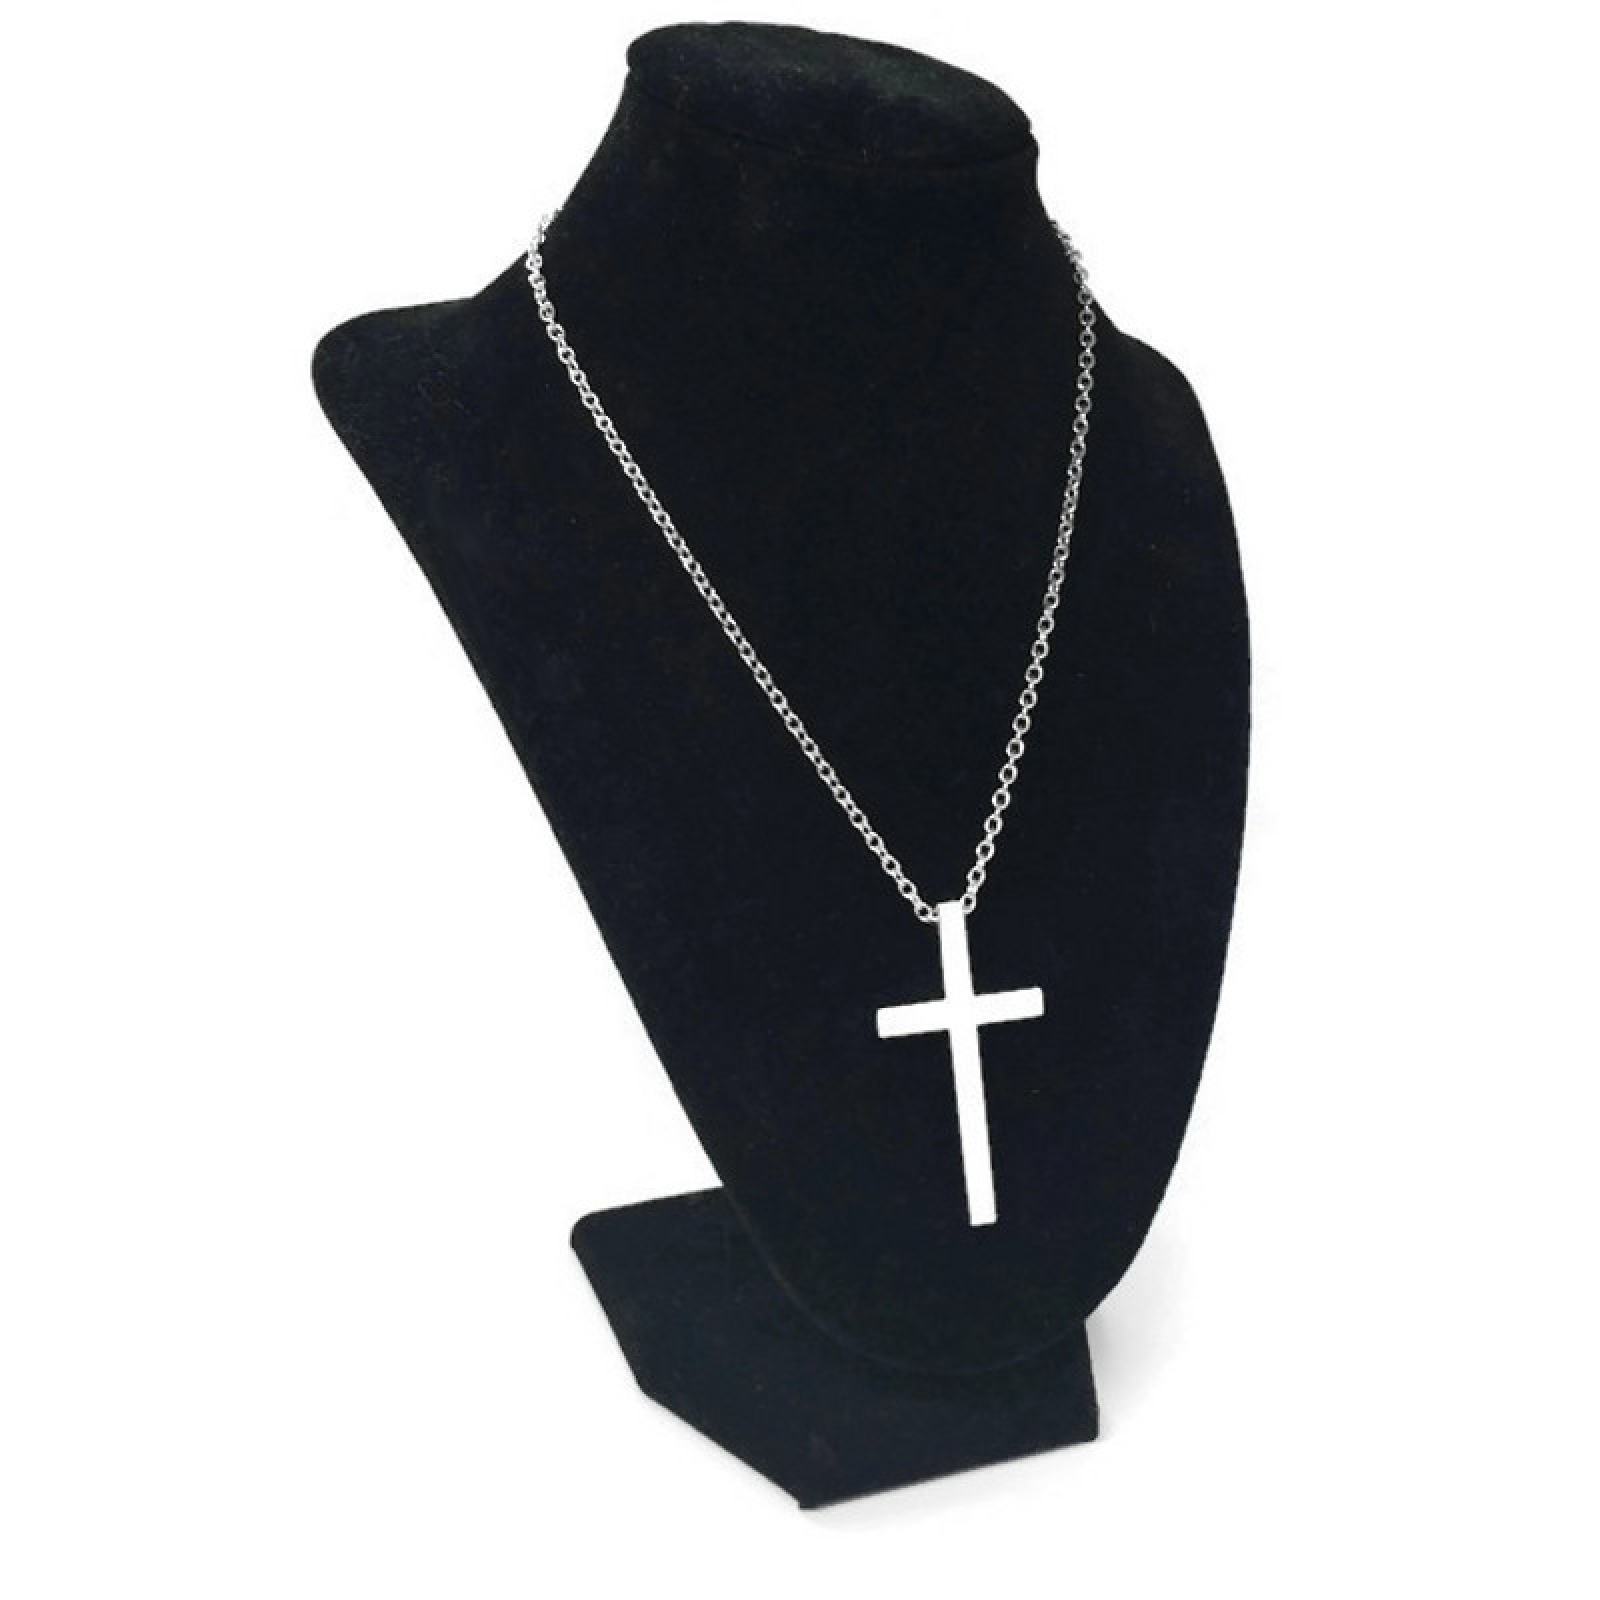 Black Cross With Silver Ring Necklace